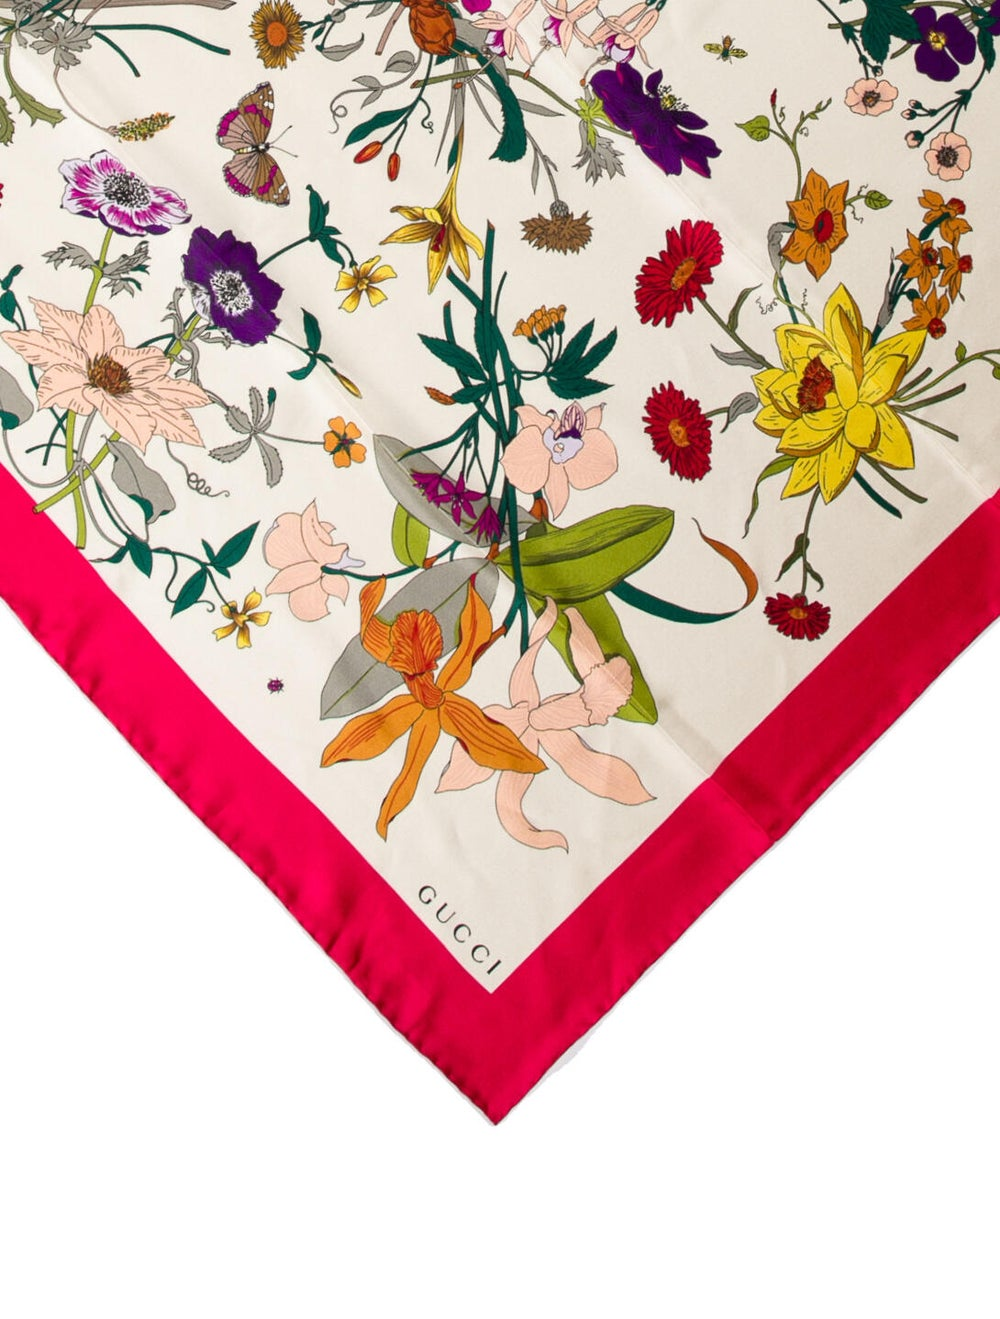 Gucci Silk Floral Print Scarf Pink - image 2